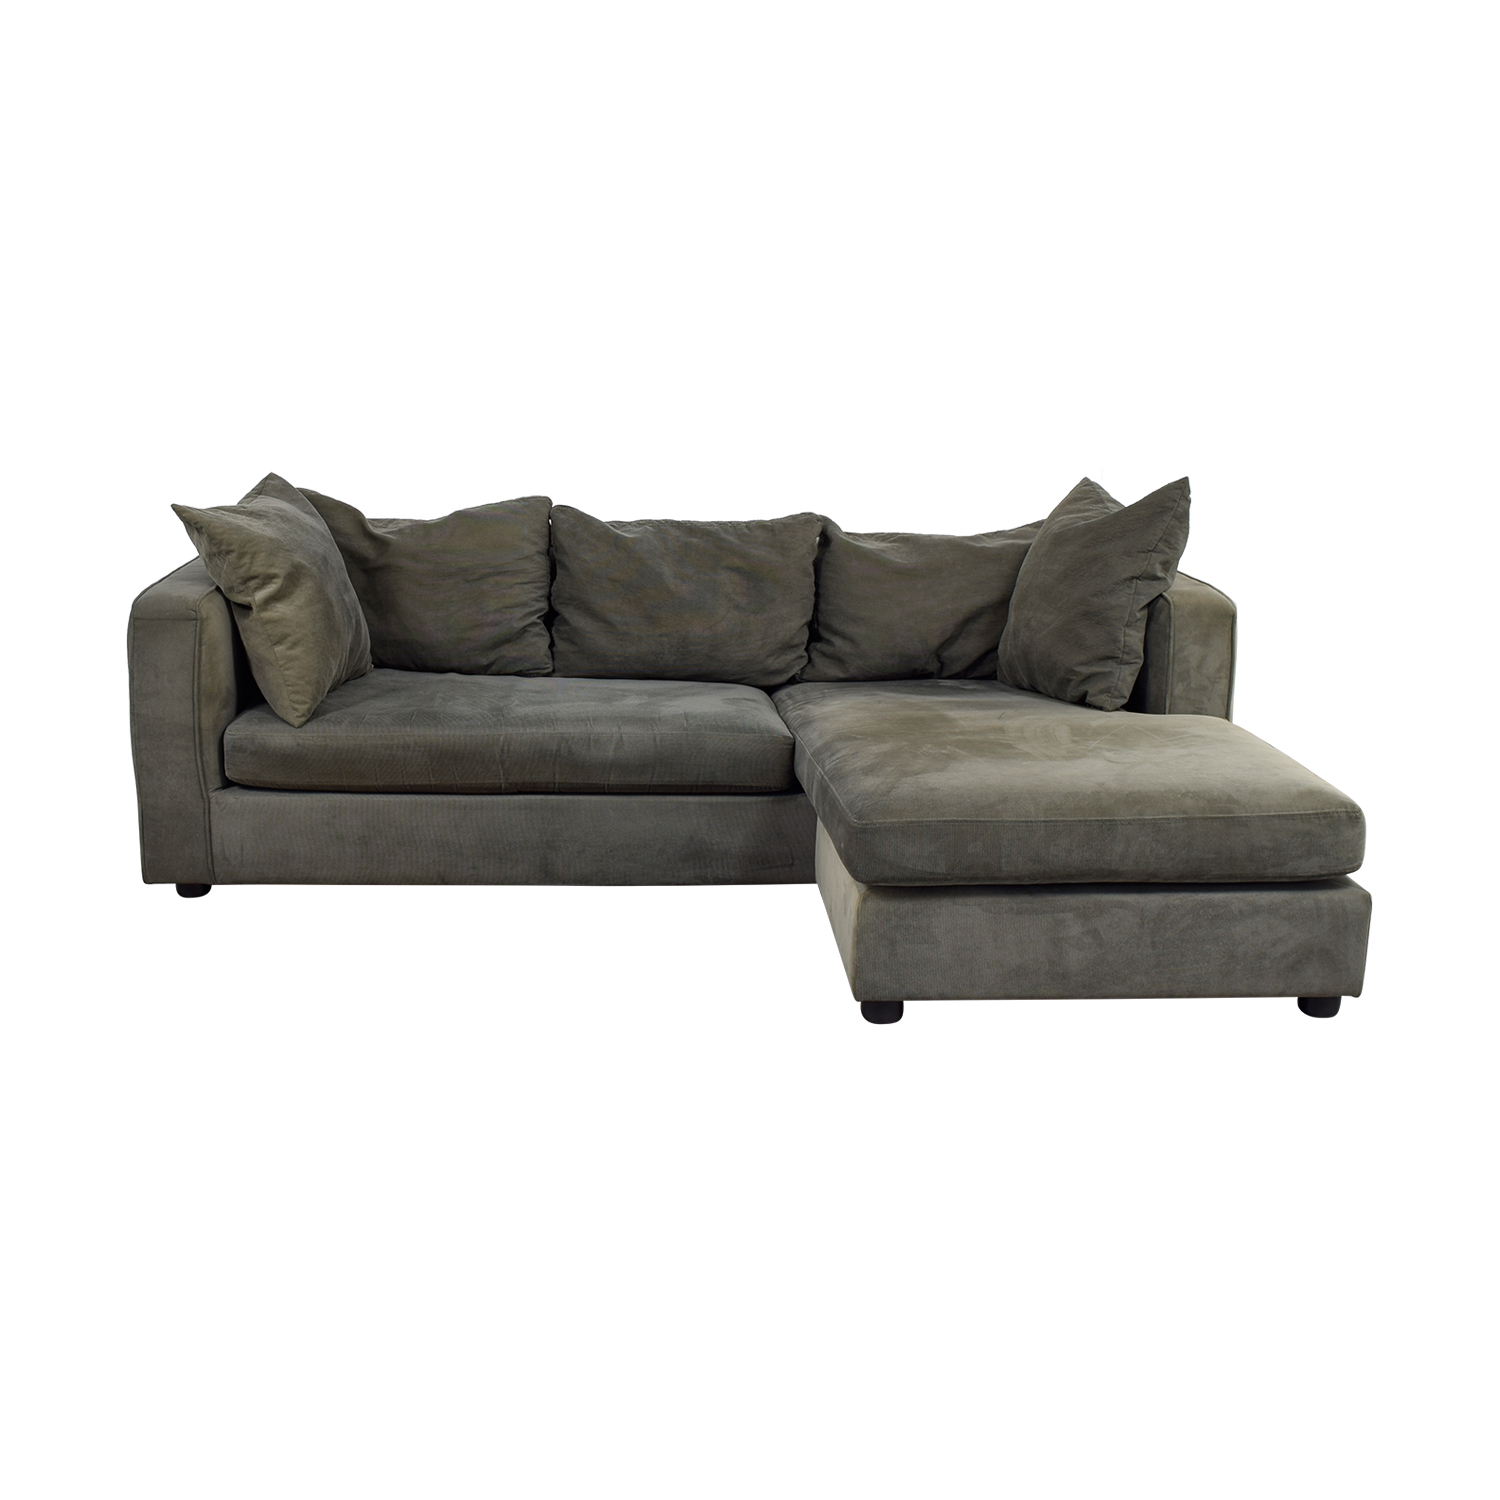 ABC Carpet & Home ABC Carpet & Home Grey L- Shaped Couch grey